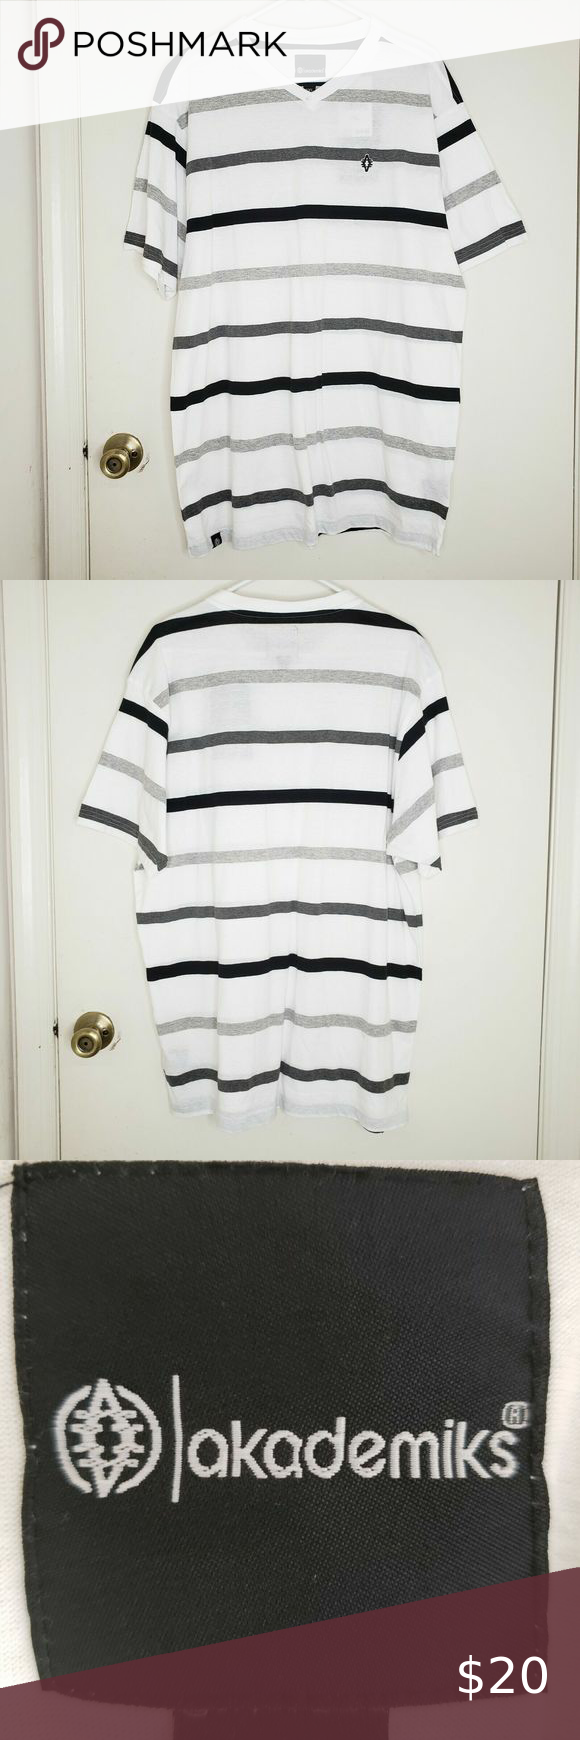 Akademiks T-Shirt Men's Striped 2XL White V-Neck Akademiks T-Shirt Men's Striped 2XL WHITE Throwback Retro Urban Streetwear USA   White/Gray/Black Stripe Pattern Size Men's 2XL XXL 2X V-Neck Cotton/Poly Blend Rap Hip/Hop 90s Inspired Brand Akademiks  Please review photos and ask any questions about the item before buying.   Thank you for your business and should you have any questions, please do not hesitate to ask.   ~ Lightning Fast Shipping ~  ~ Sold as Shown ~ Akademiks Shirts Tees - Short S